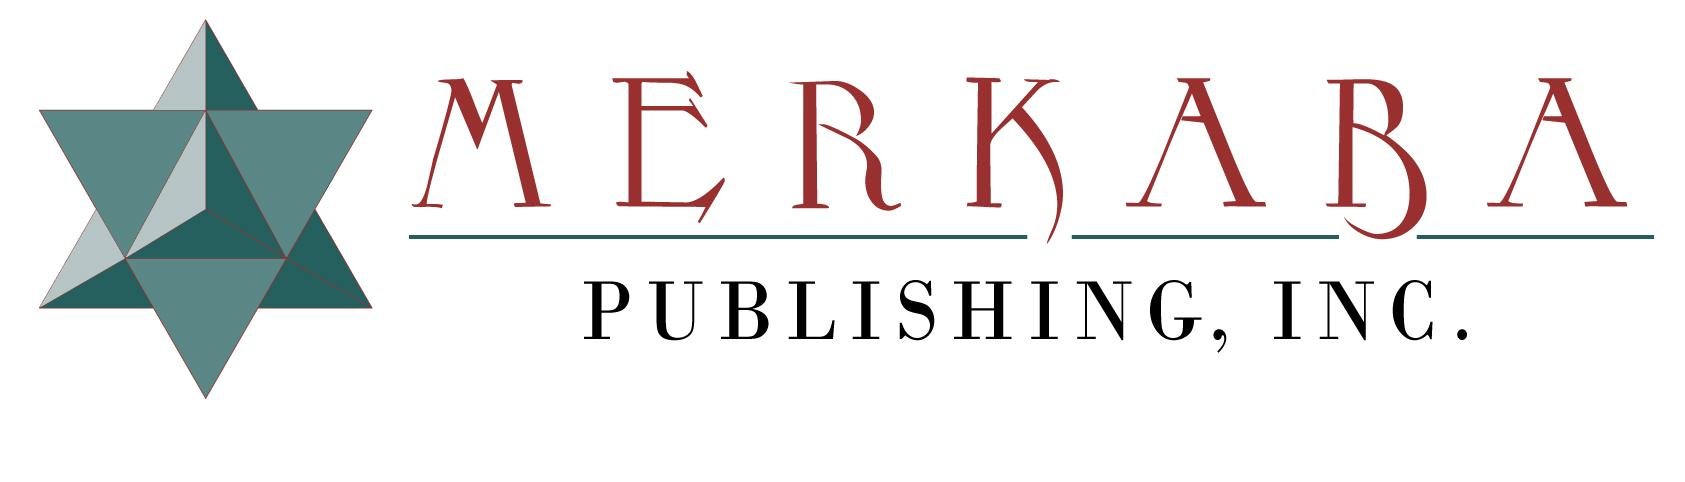 MERKABA Publishing LOGO